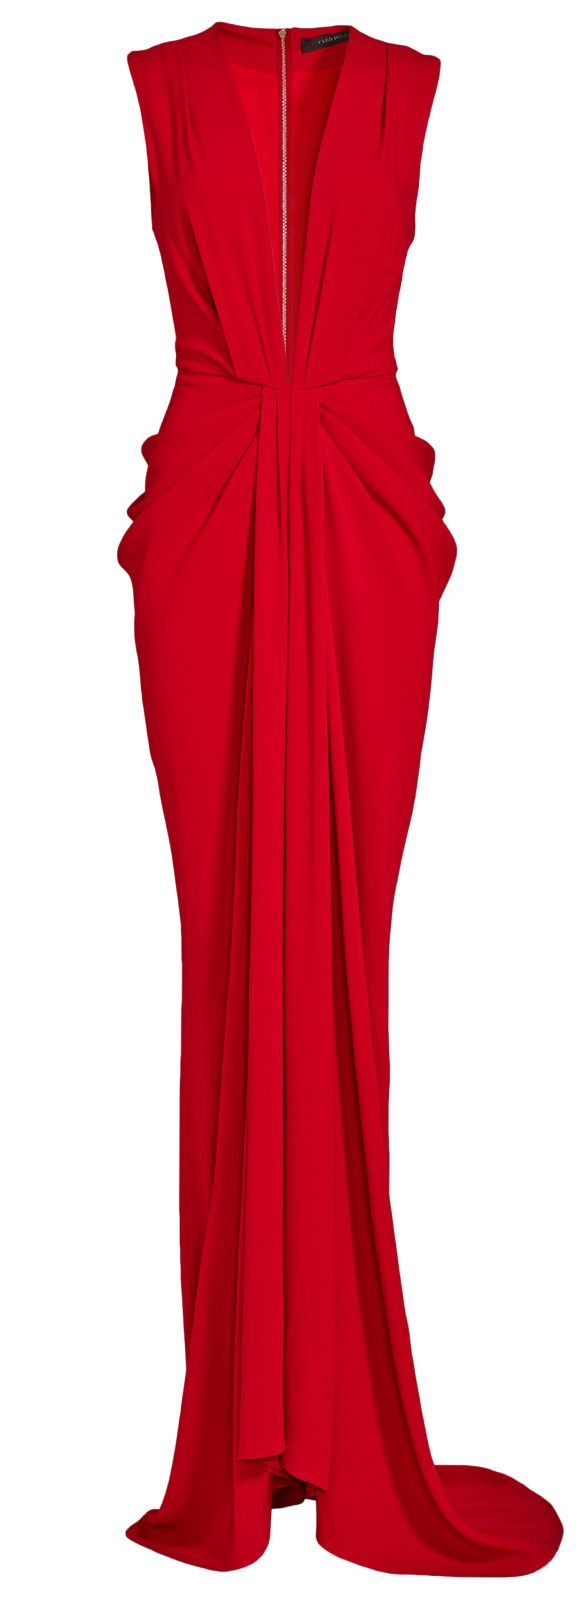 Plunge Red Gown // Thakoon | Red Gowns, Evening Dresses, Gowns